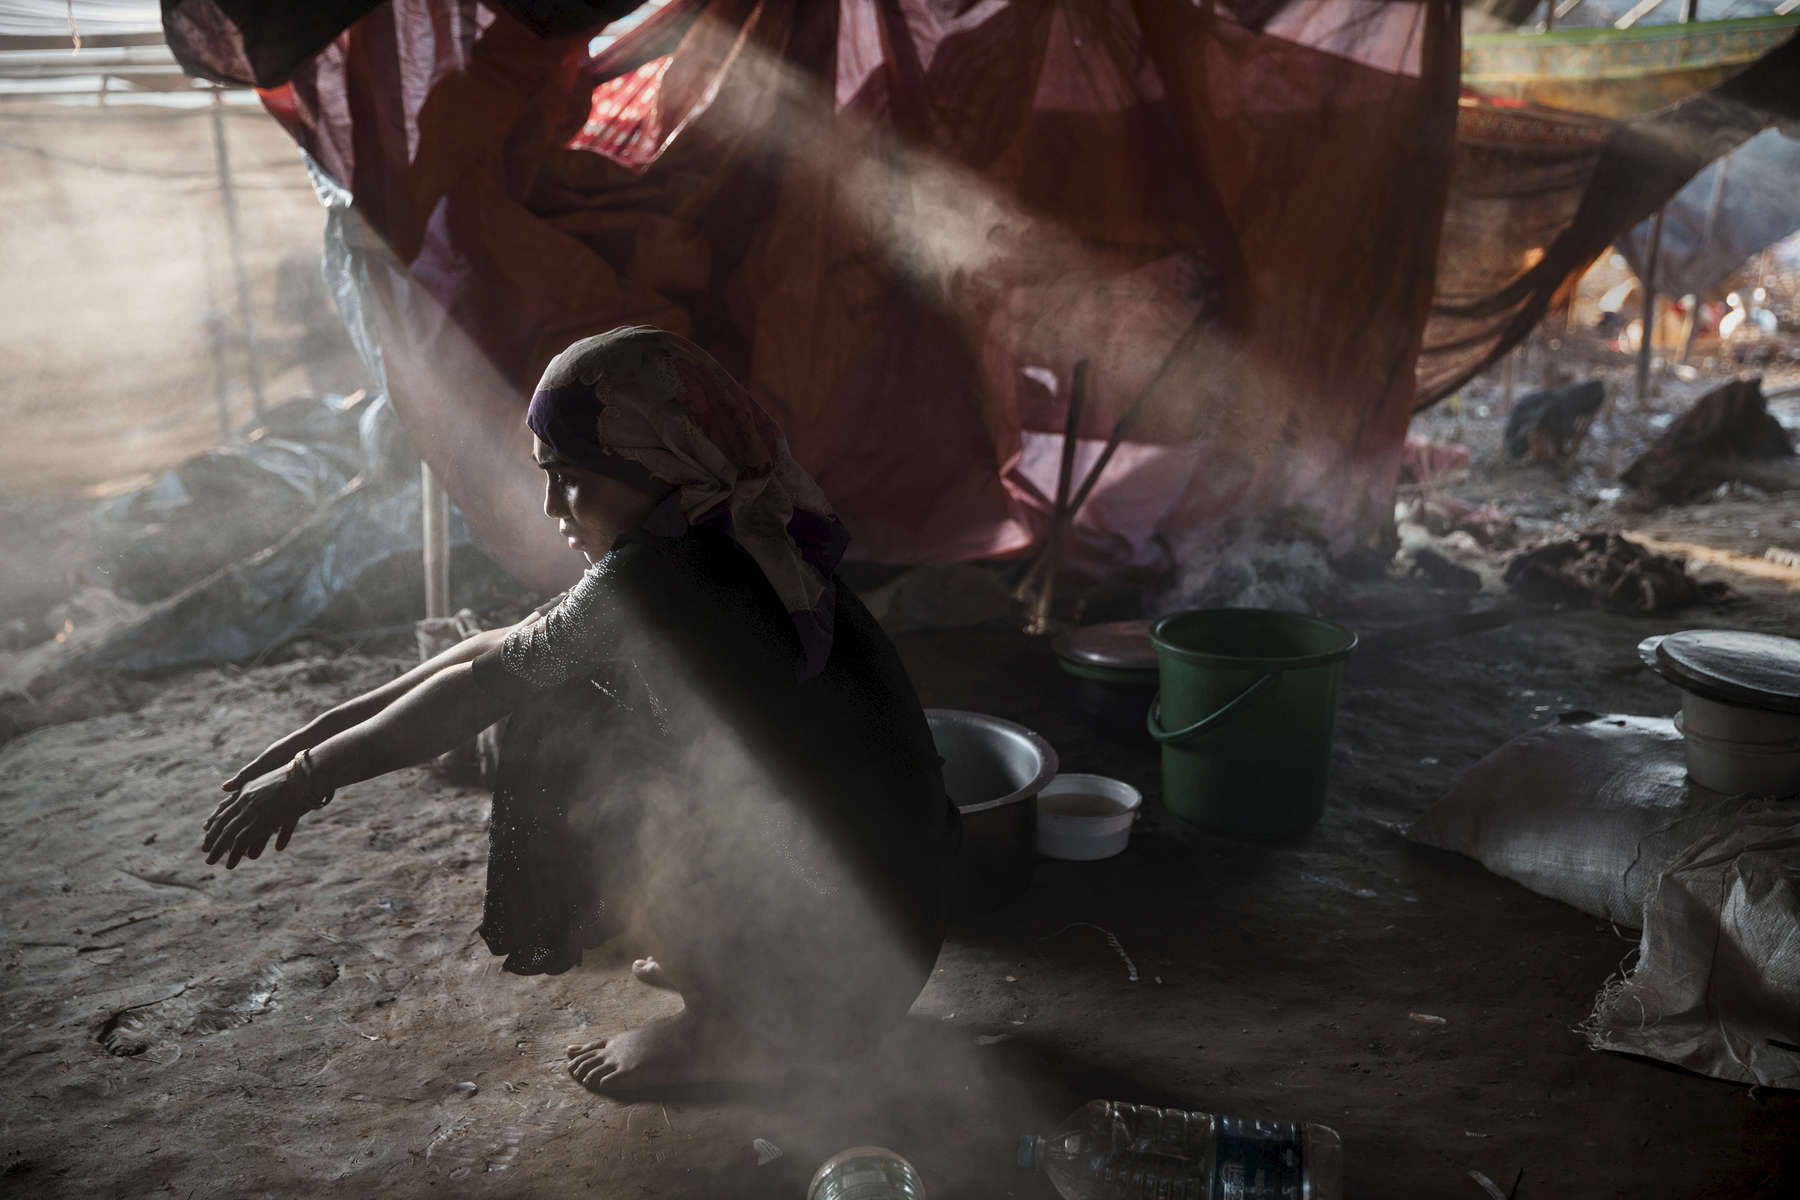 Sajida Begum, 18, sits in her makeshift tent washing rice for dinner as smoke catches the late afternoon light September 25, in Thainkhali camp, Cox's Bazar. The refugee emergency unfolded in late August after an attack on state security forces by Rohingya insurgents, triggering a brutal military crackdown that has forced more than half of the country's 1.1 million population fleeing to neighboring Bangladesh creating the fastest cross-border exodus ever witnessed with over 655,000 new arrivals.